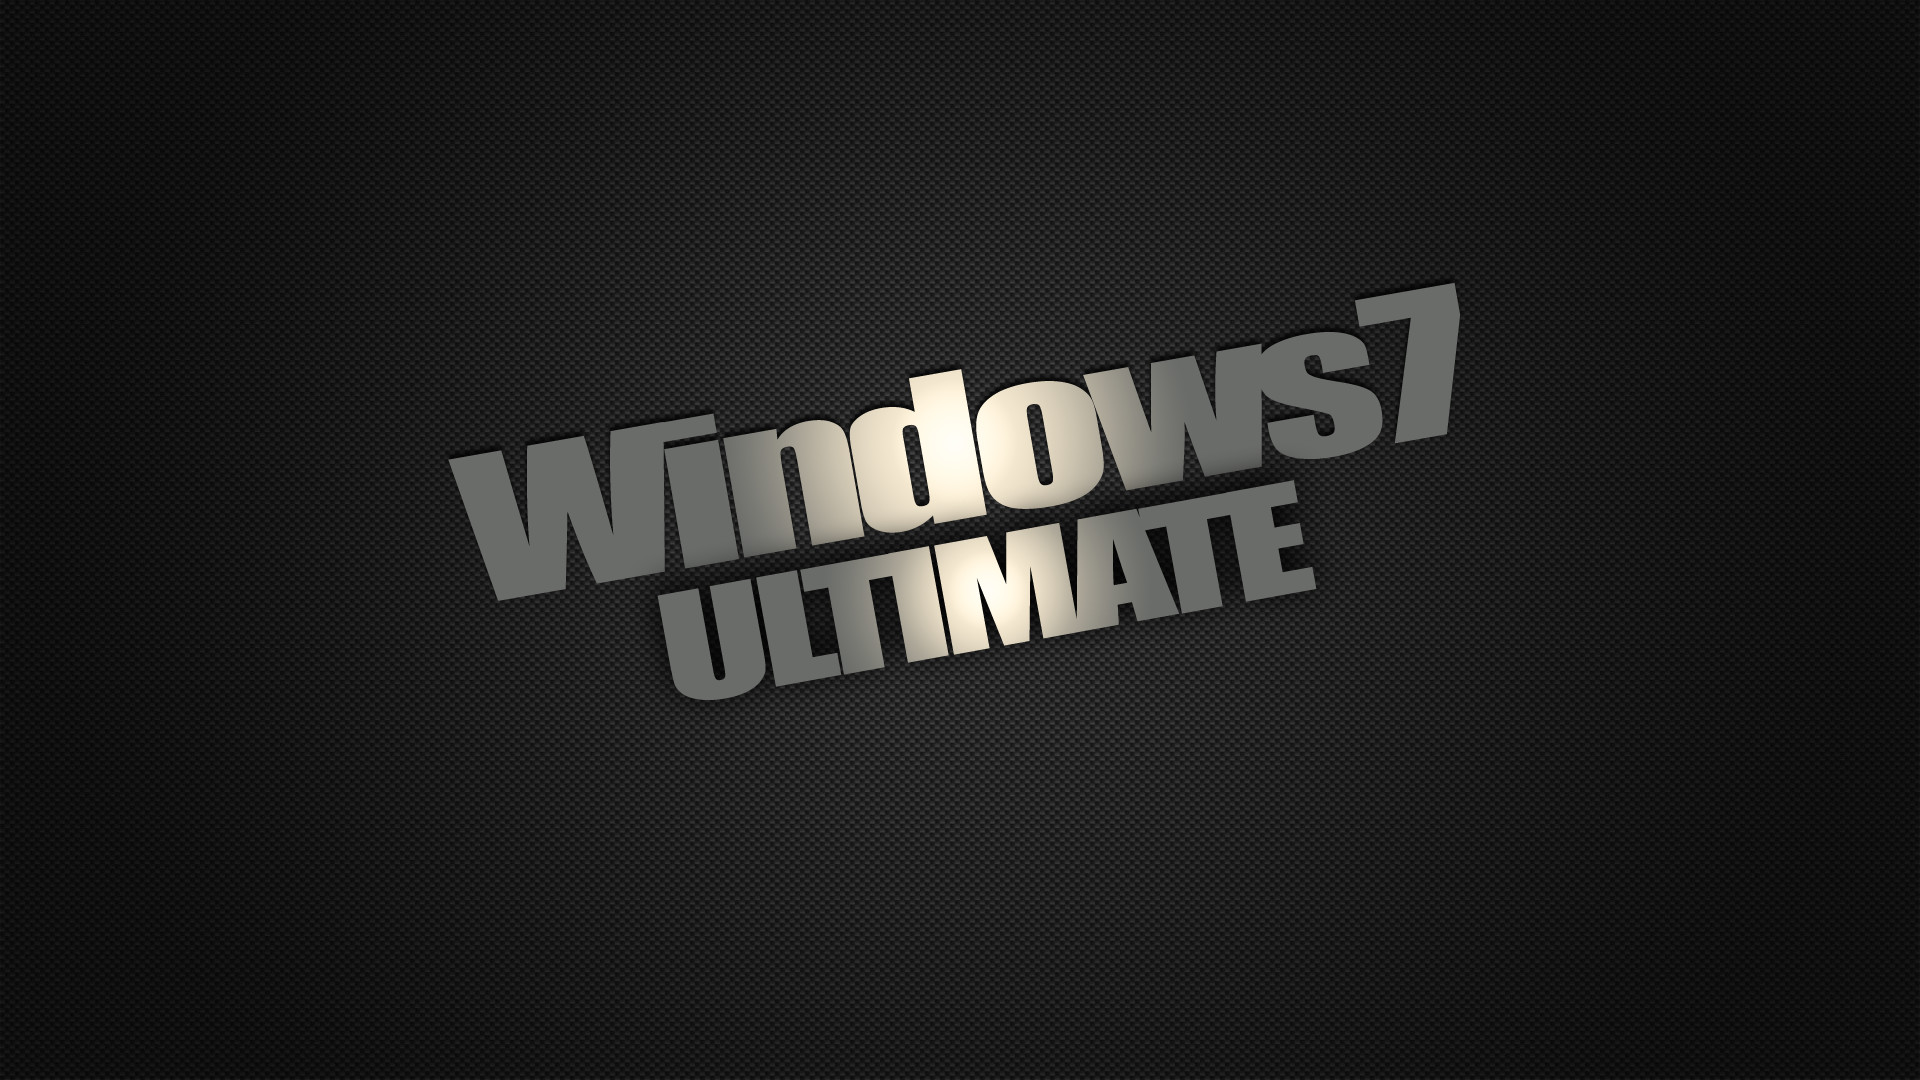 1920x1080 Windows 7 Ultimate HD 721382